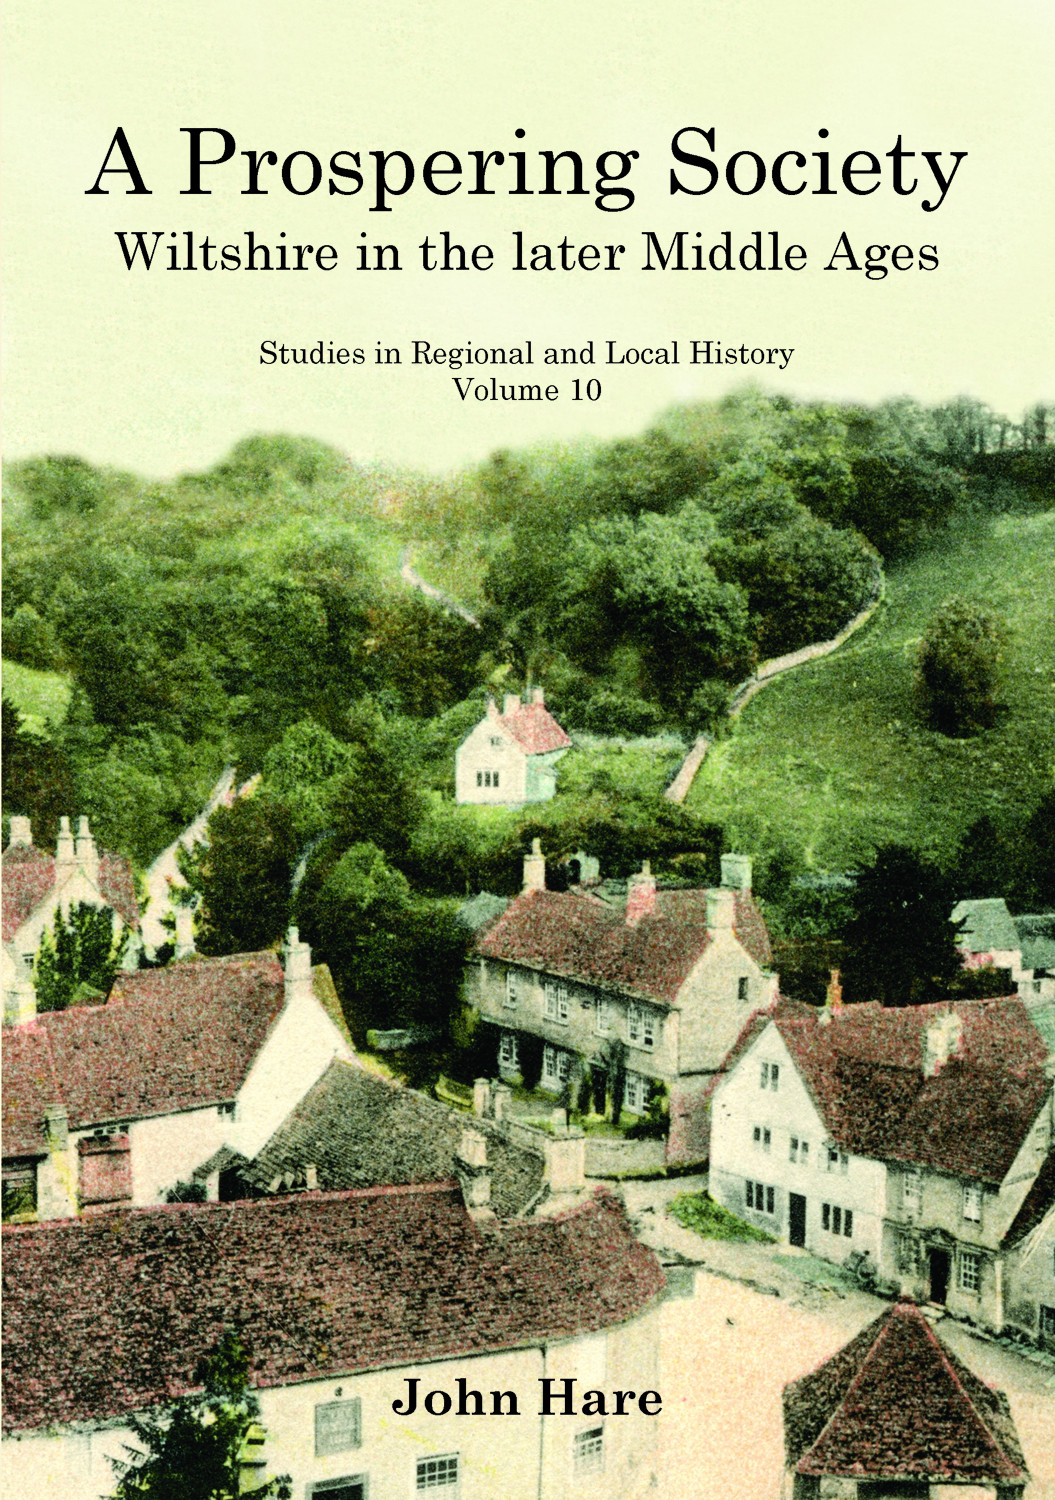 Prospering Society, A: Wiltshire in the Later Middle Ages